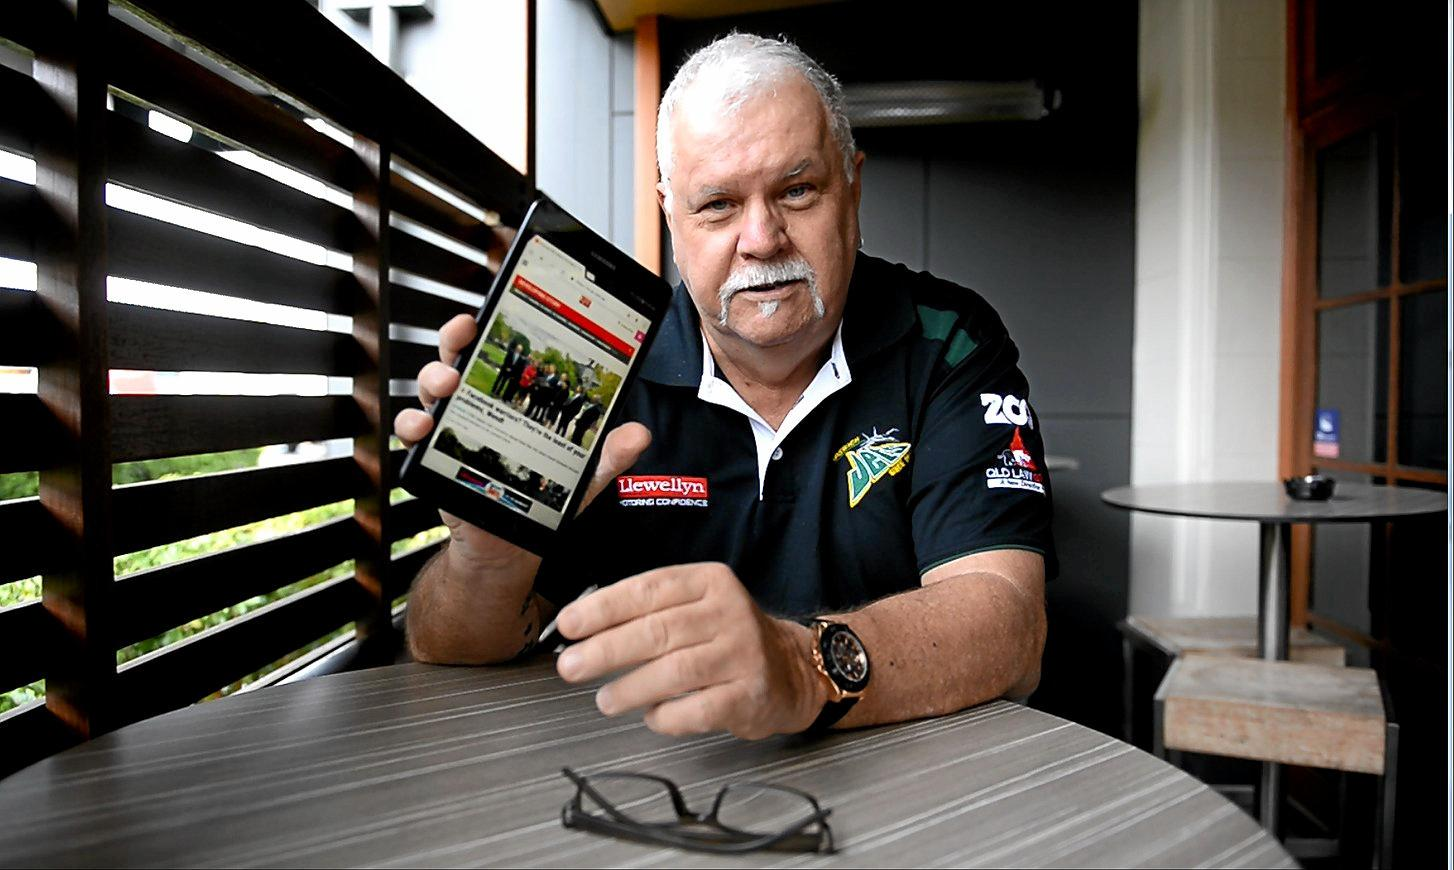 Greg Jacko Lyons talks about the Queensland Times tablet offer.